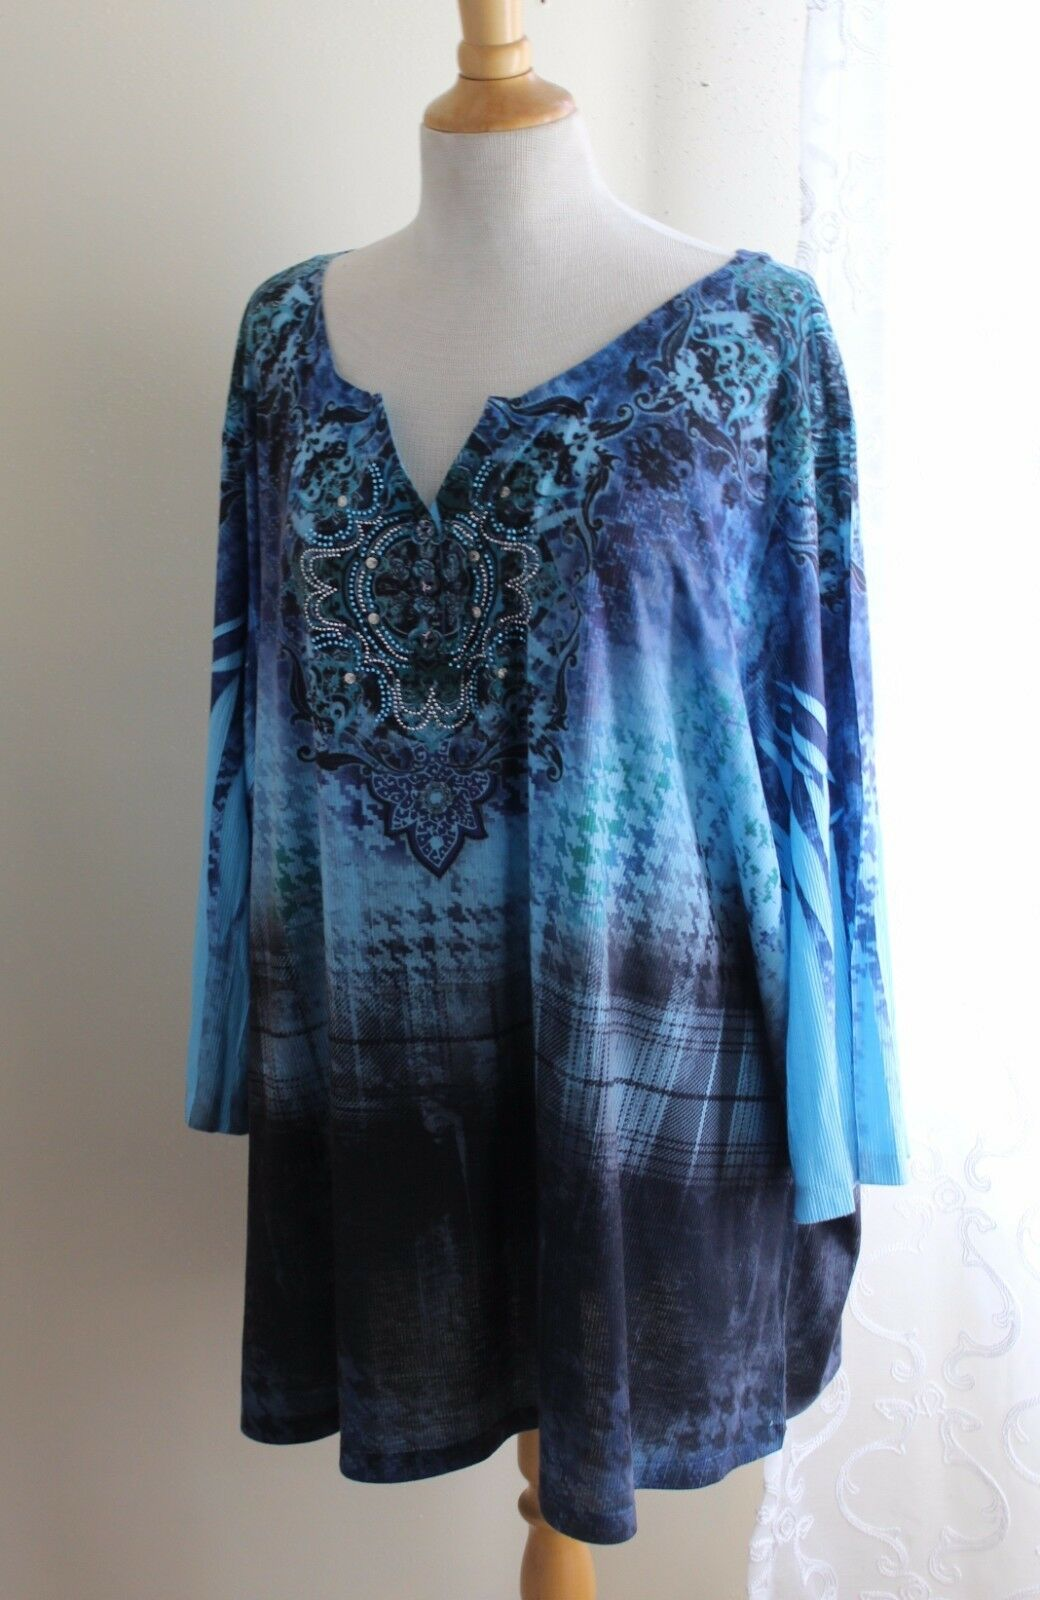 Catherines -Sz 4X Funky Art-to-Wear Blau Paisley Floral Tunic Knit Top Shirt